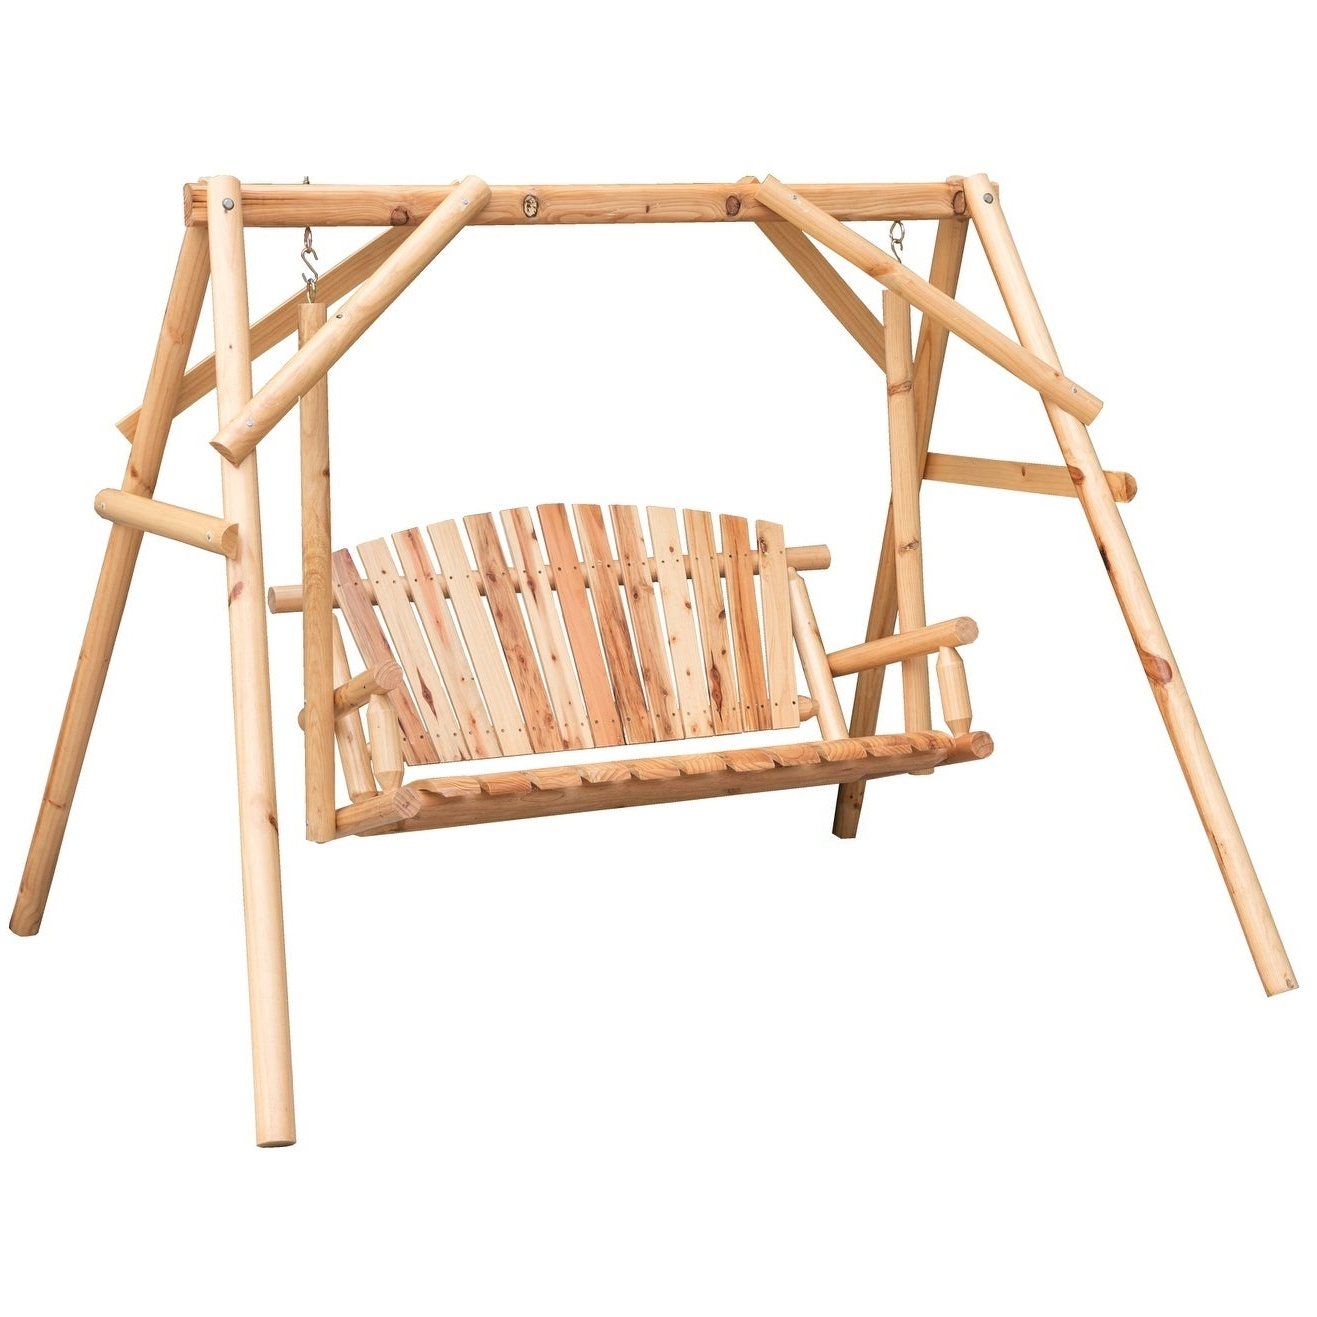 Newest 2 Person Light Teak Oil Wood Outdoor Swings Throughout Wooden A Frame 2 Person Outdoor Porch Patio Swing Log Wood Chair Bench (View 19 of 25)